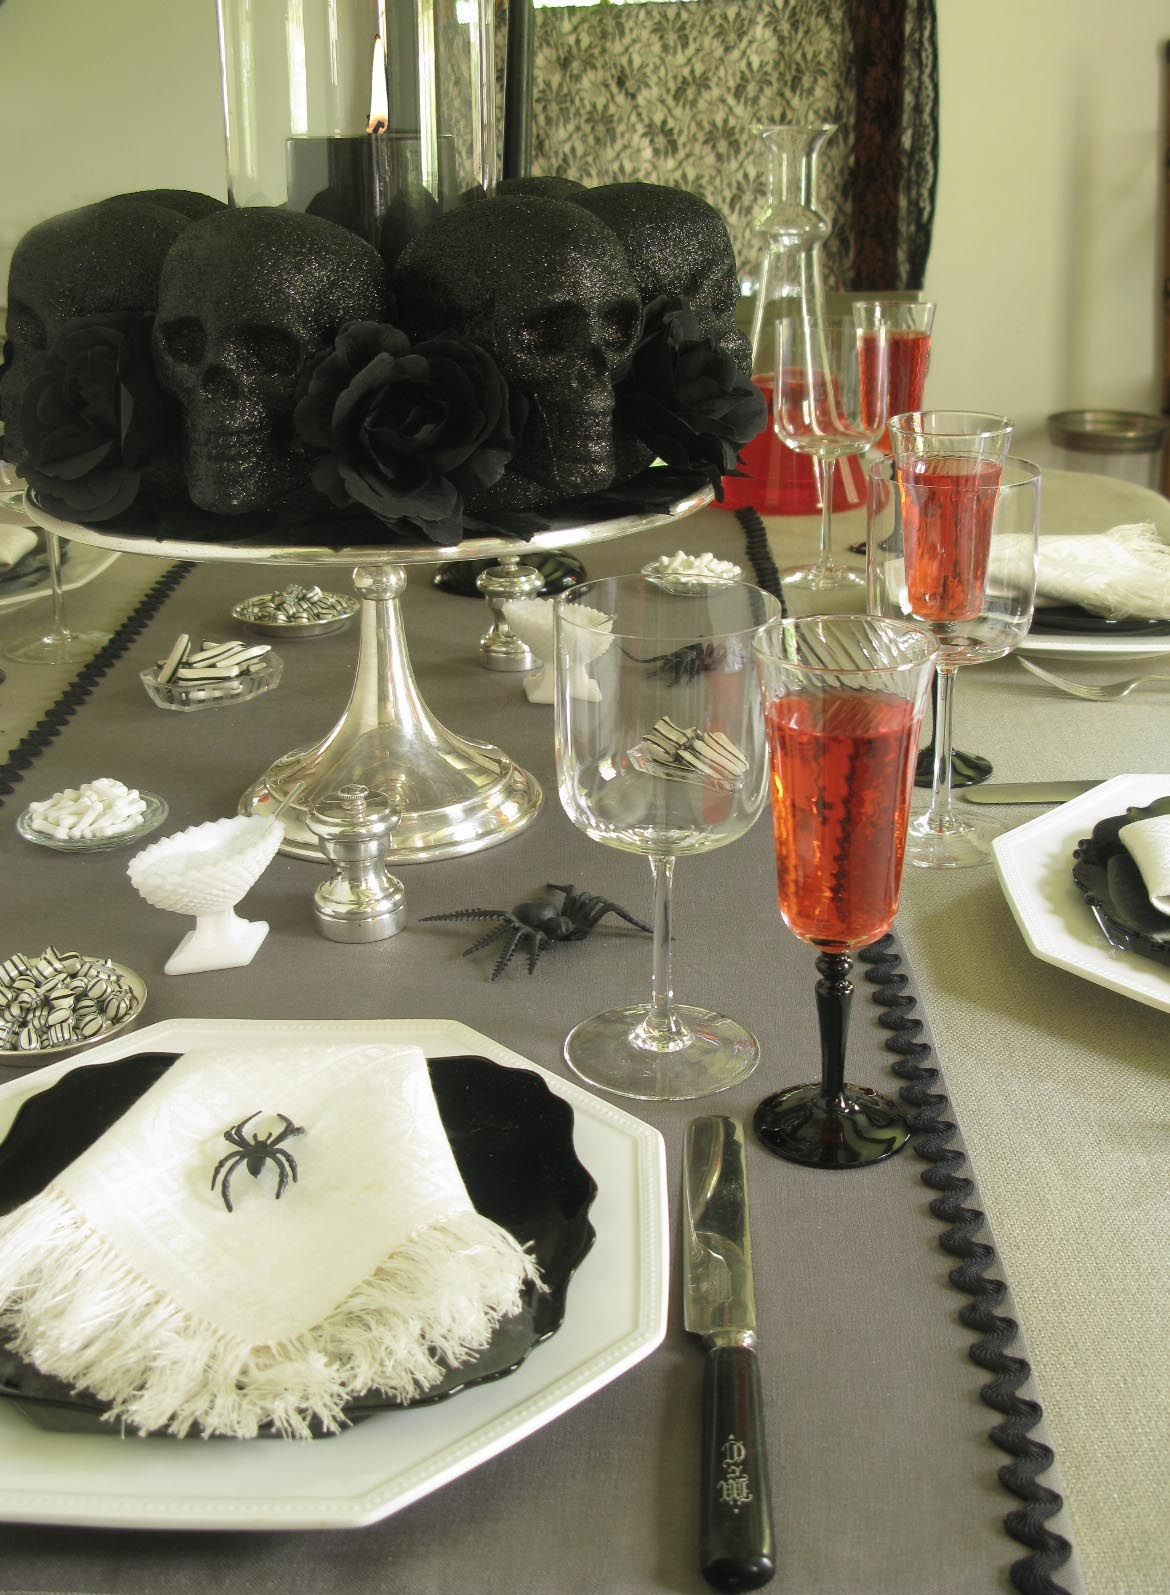 SCTable Halloween decoration Pinterest Halloween ideas - Halloween Table Decorations Pinterest